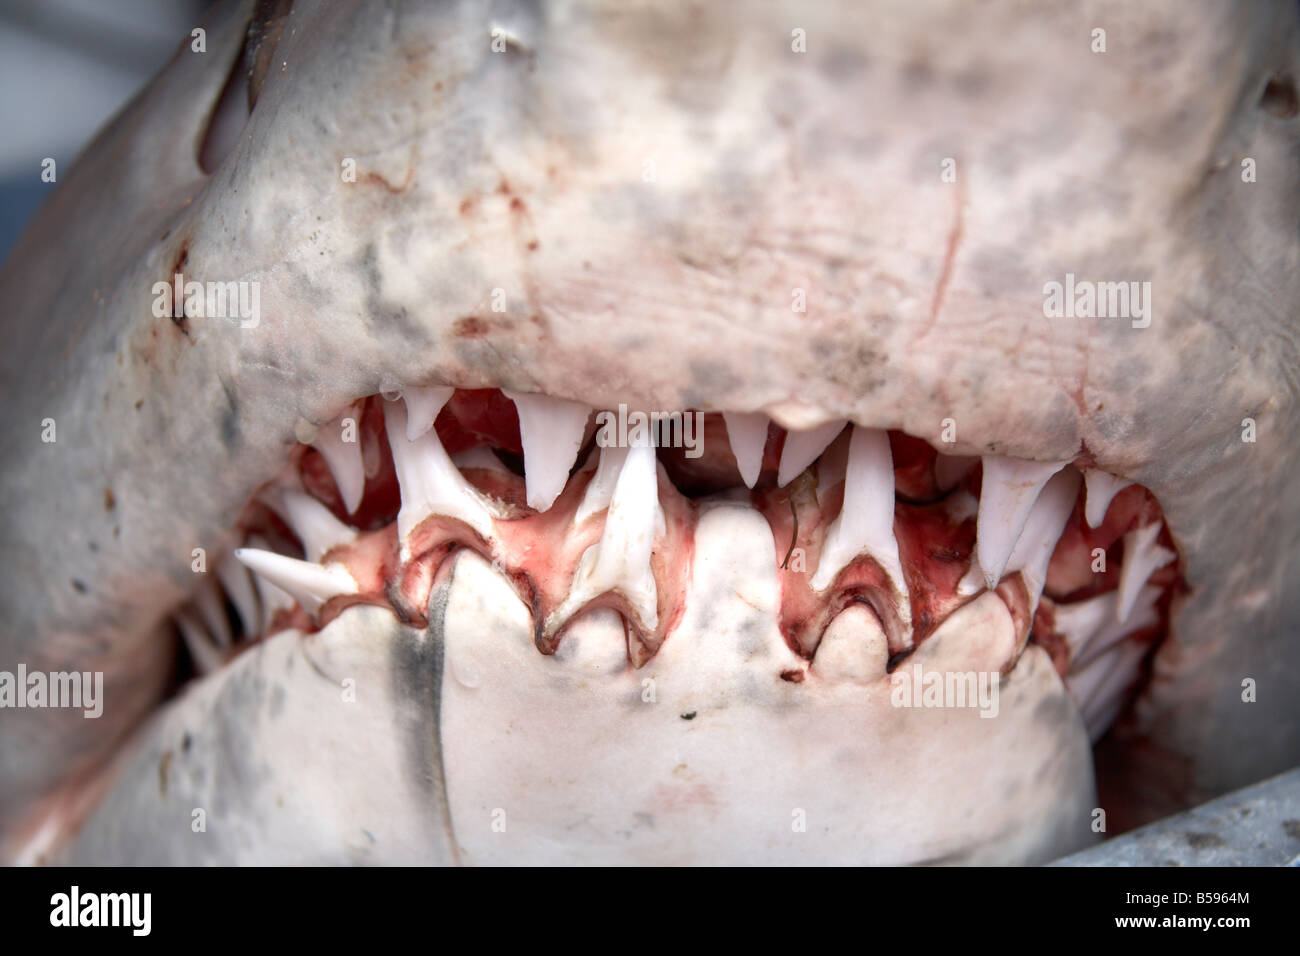 Shark s mouth with rows of sharp teeth caught off coast of Queensland QLD Australia - Stock Image